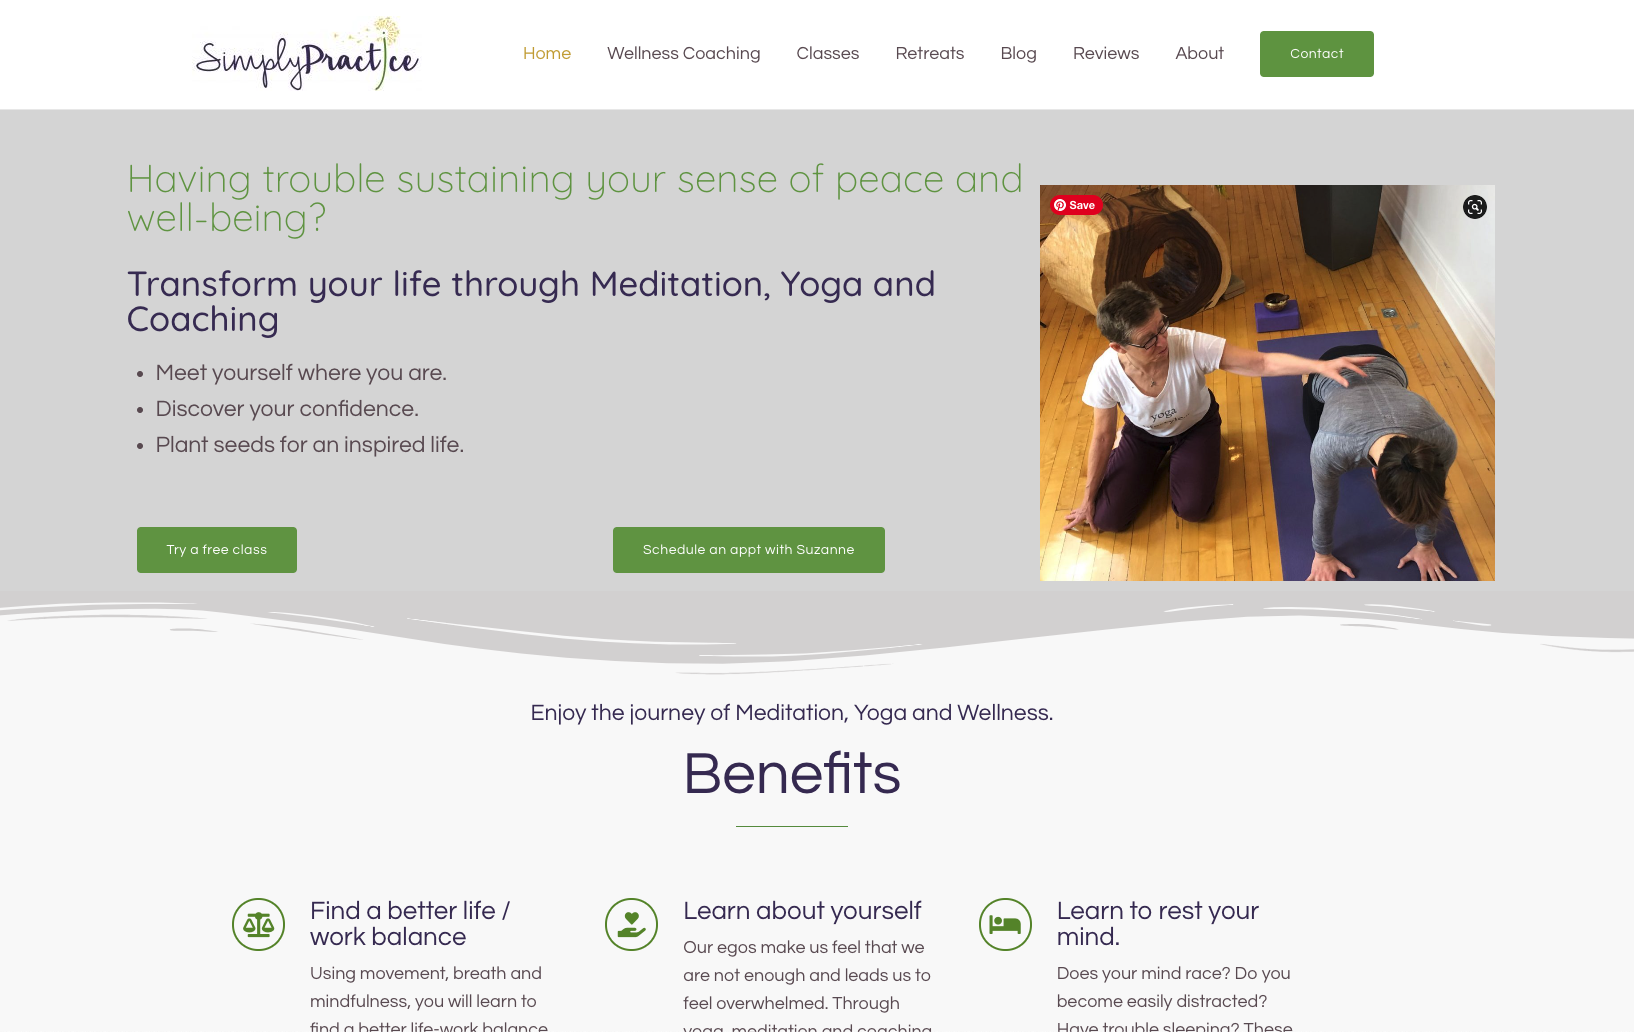 Simply Practice website design for Yoga and Wellness Coaching